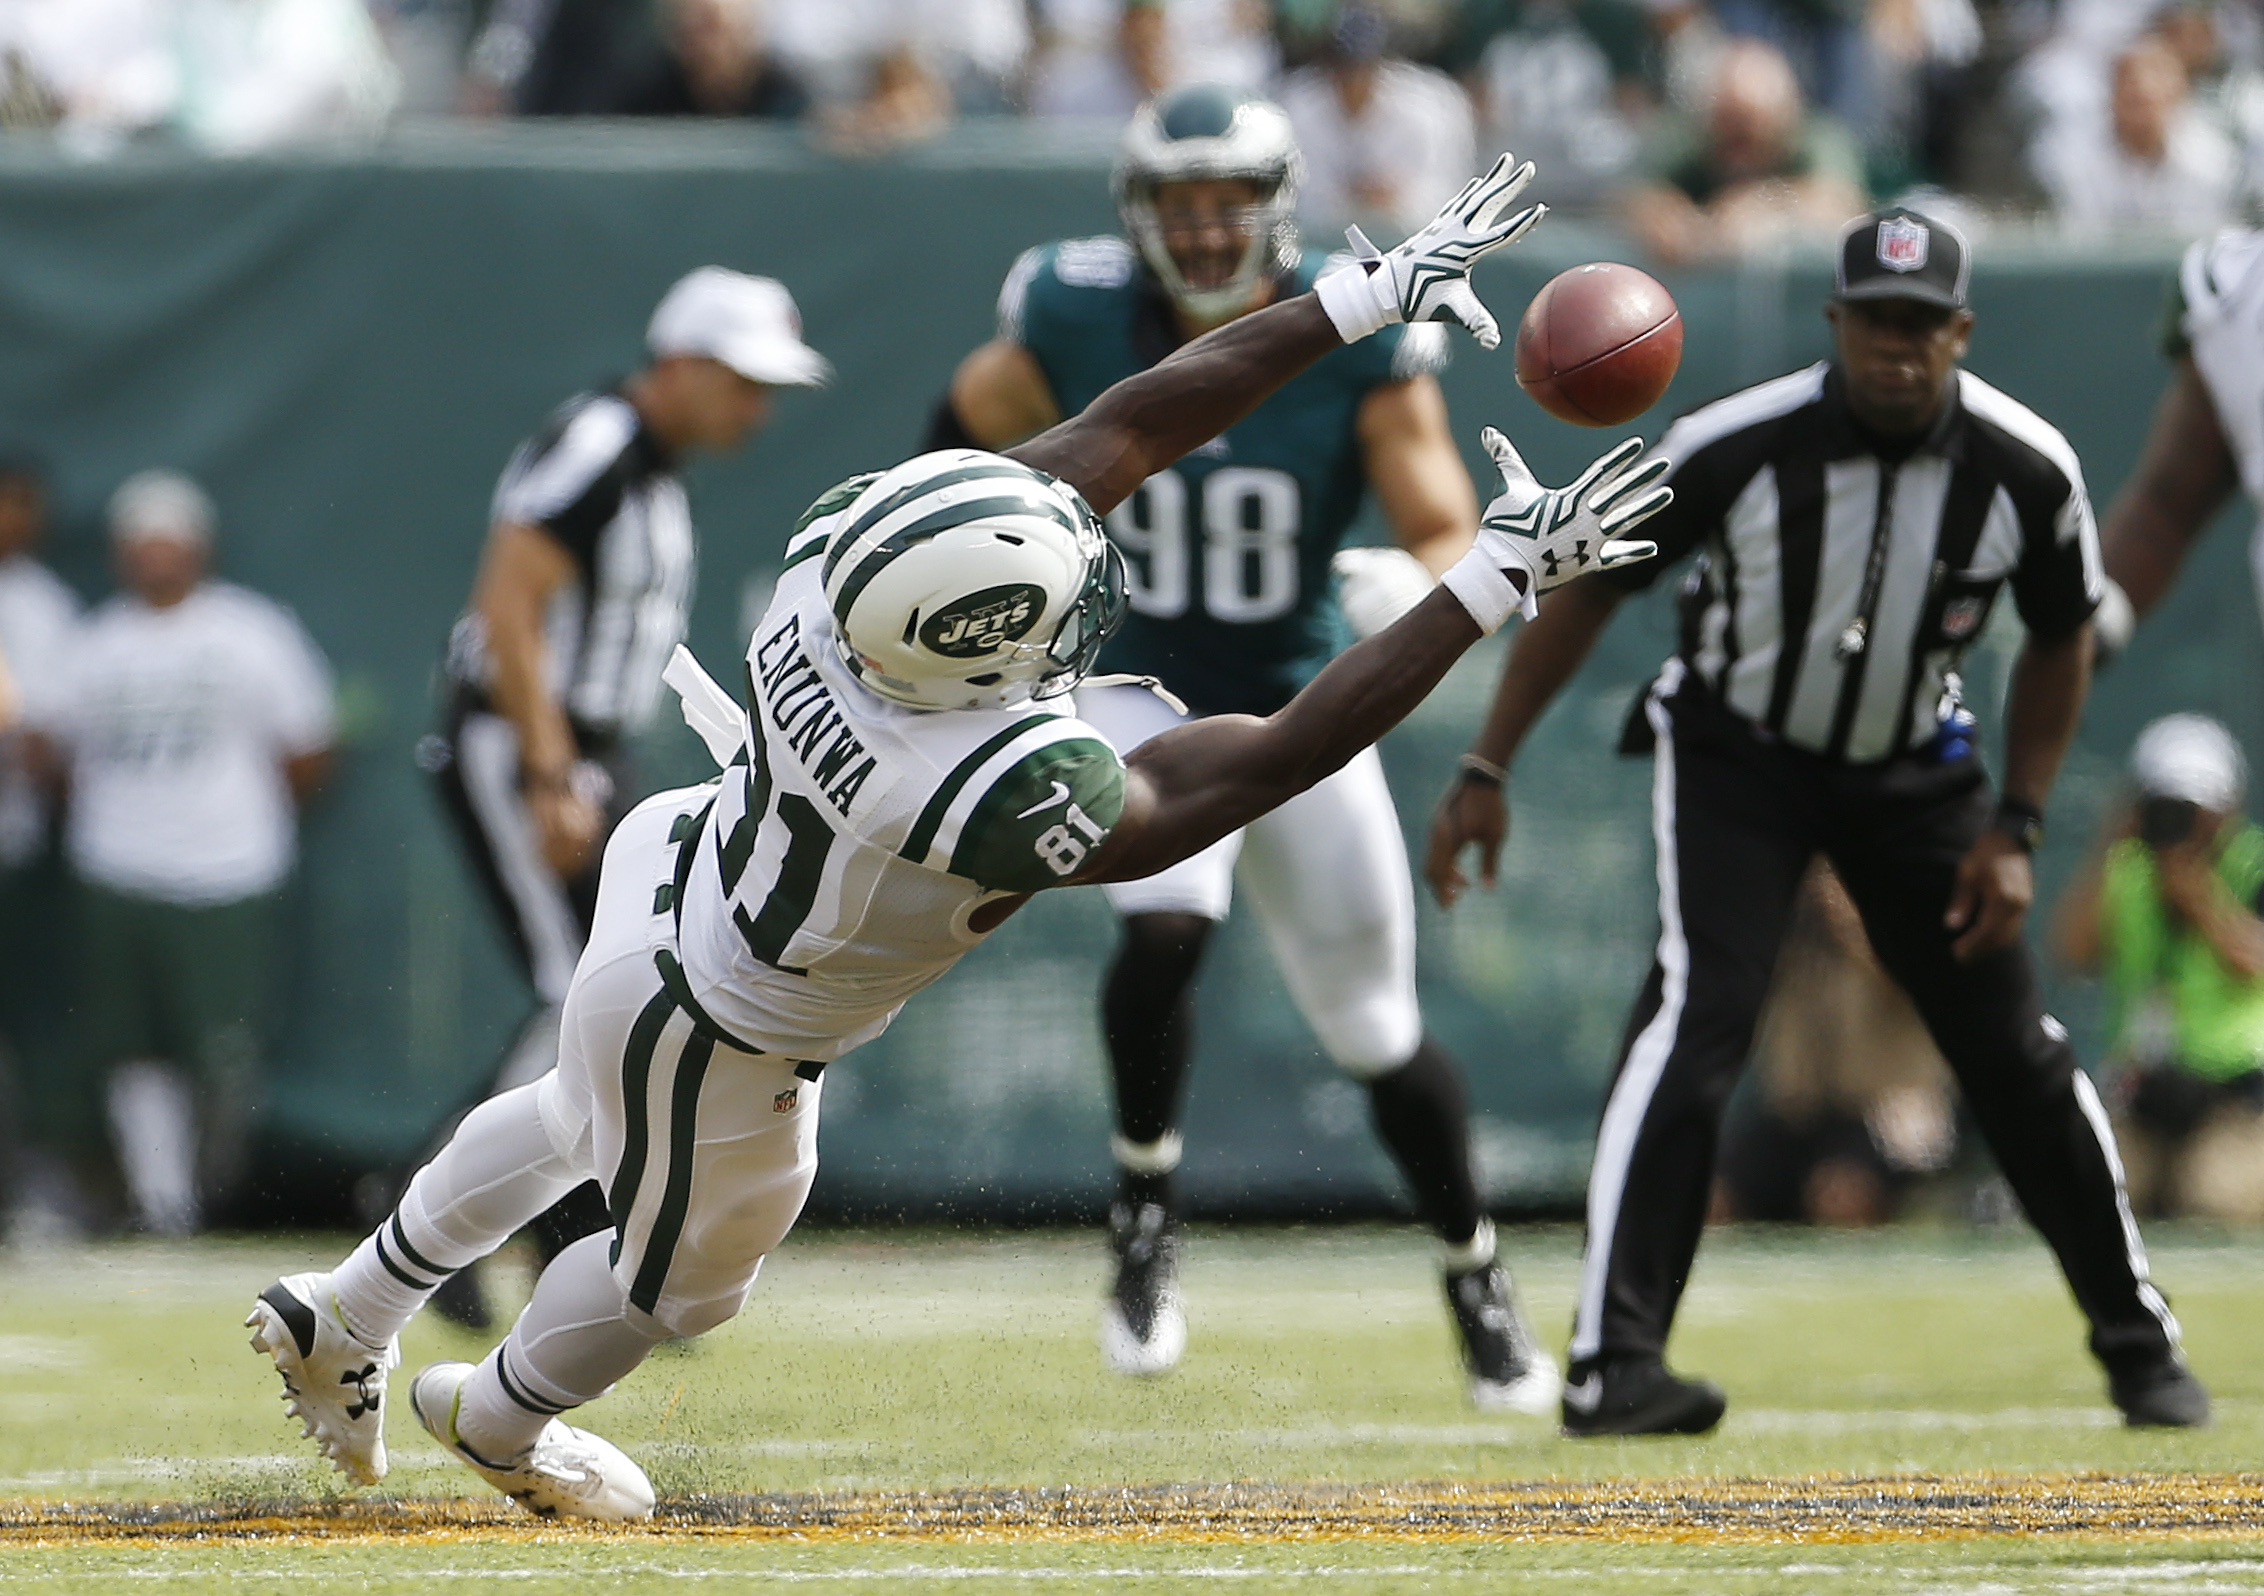 New York Jets wide receiver Quincy Enunwa (81) makes a diving catch against the Philadelphia Eagles during the third quarter of an NFL football game, Sunday, Sept. 27, 2015, in East Rutherford, N.J. (AP Photo/Adam Hunger)